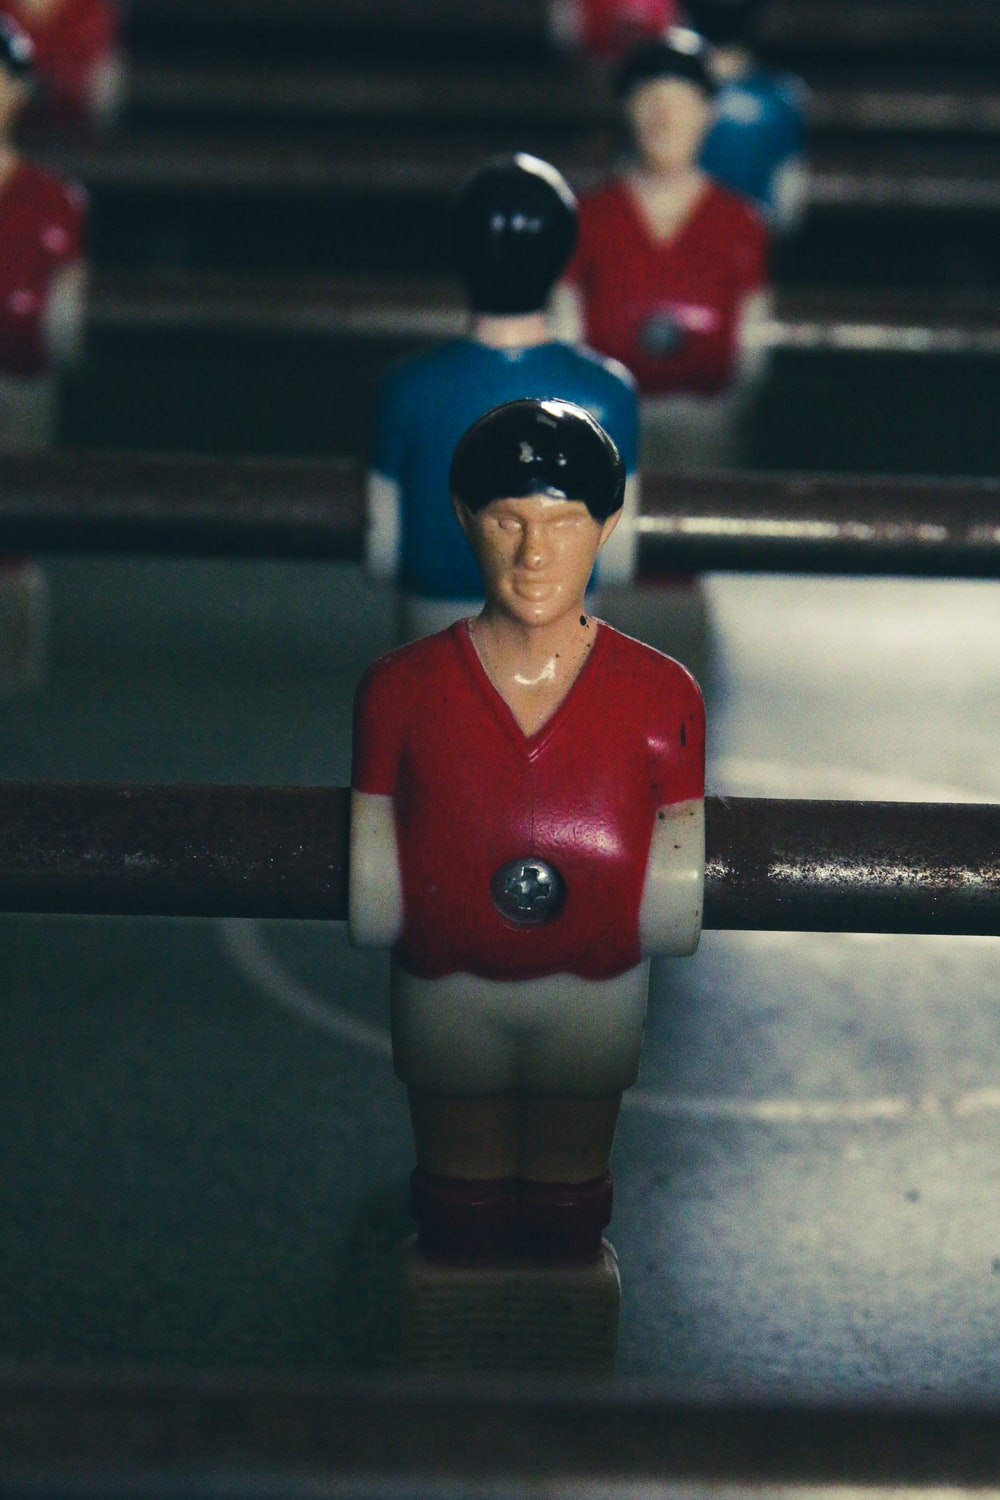 man in red and blue jersey shirt and blue cap figurine